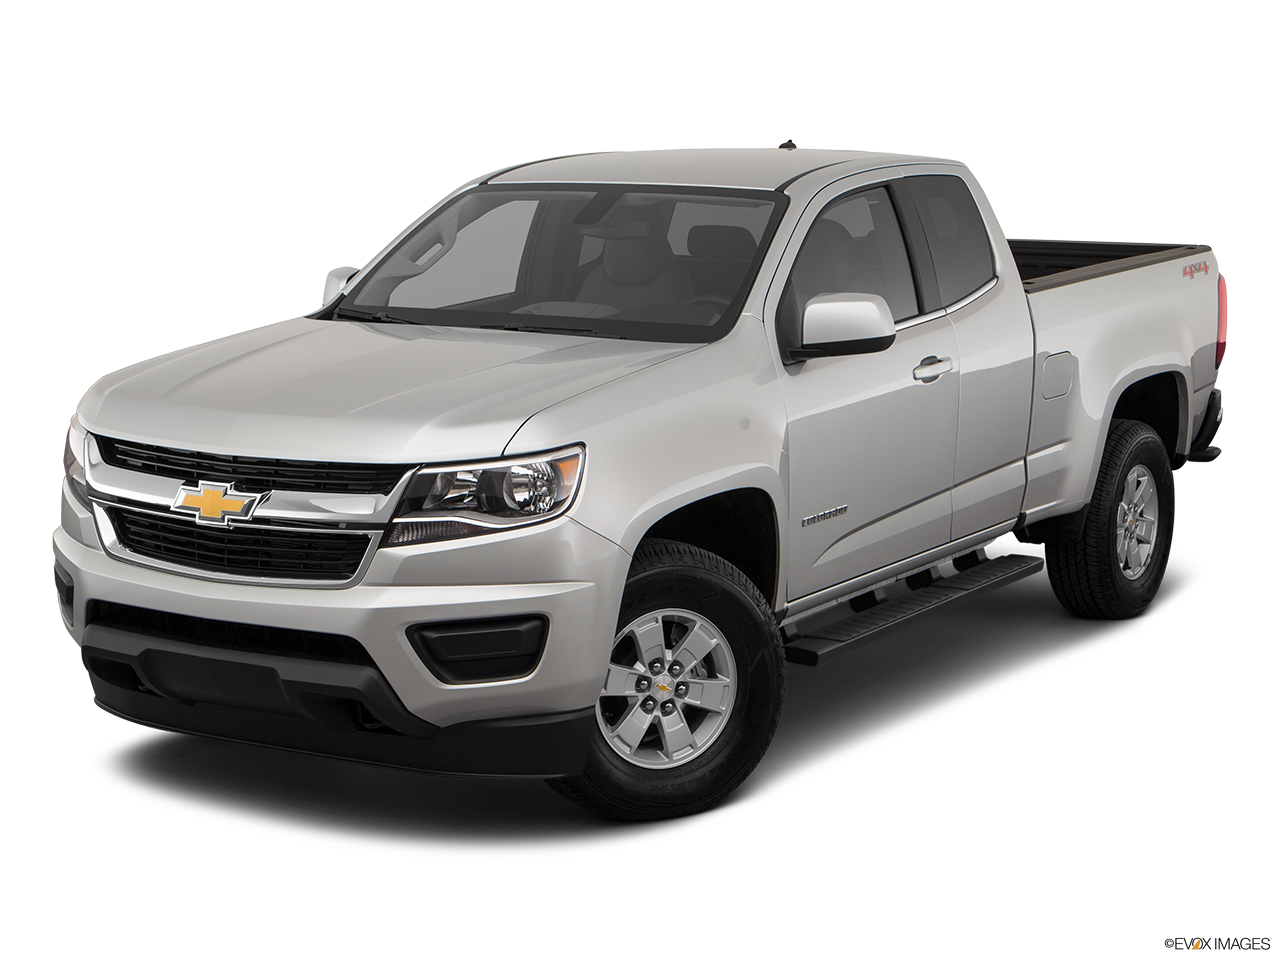 Chevy Colorado: The Mid Sized Truck That Offers More